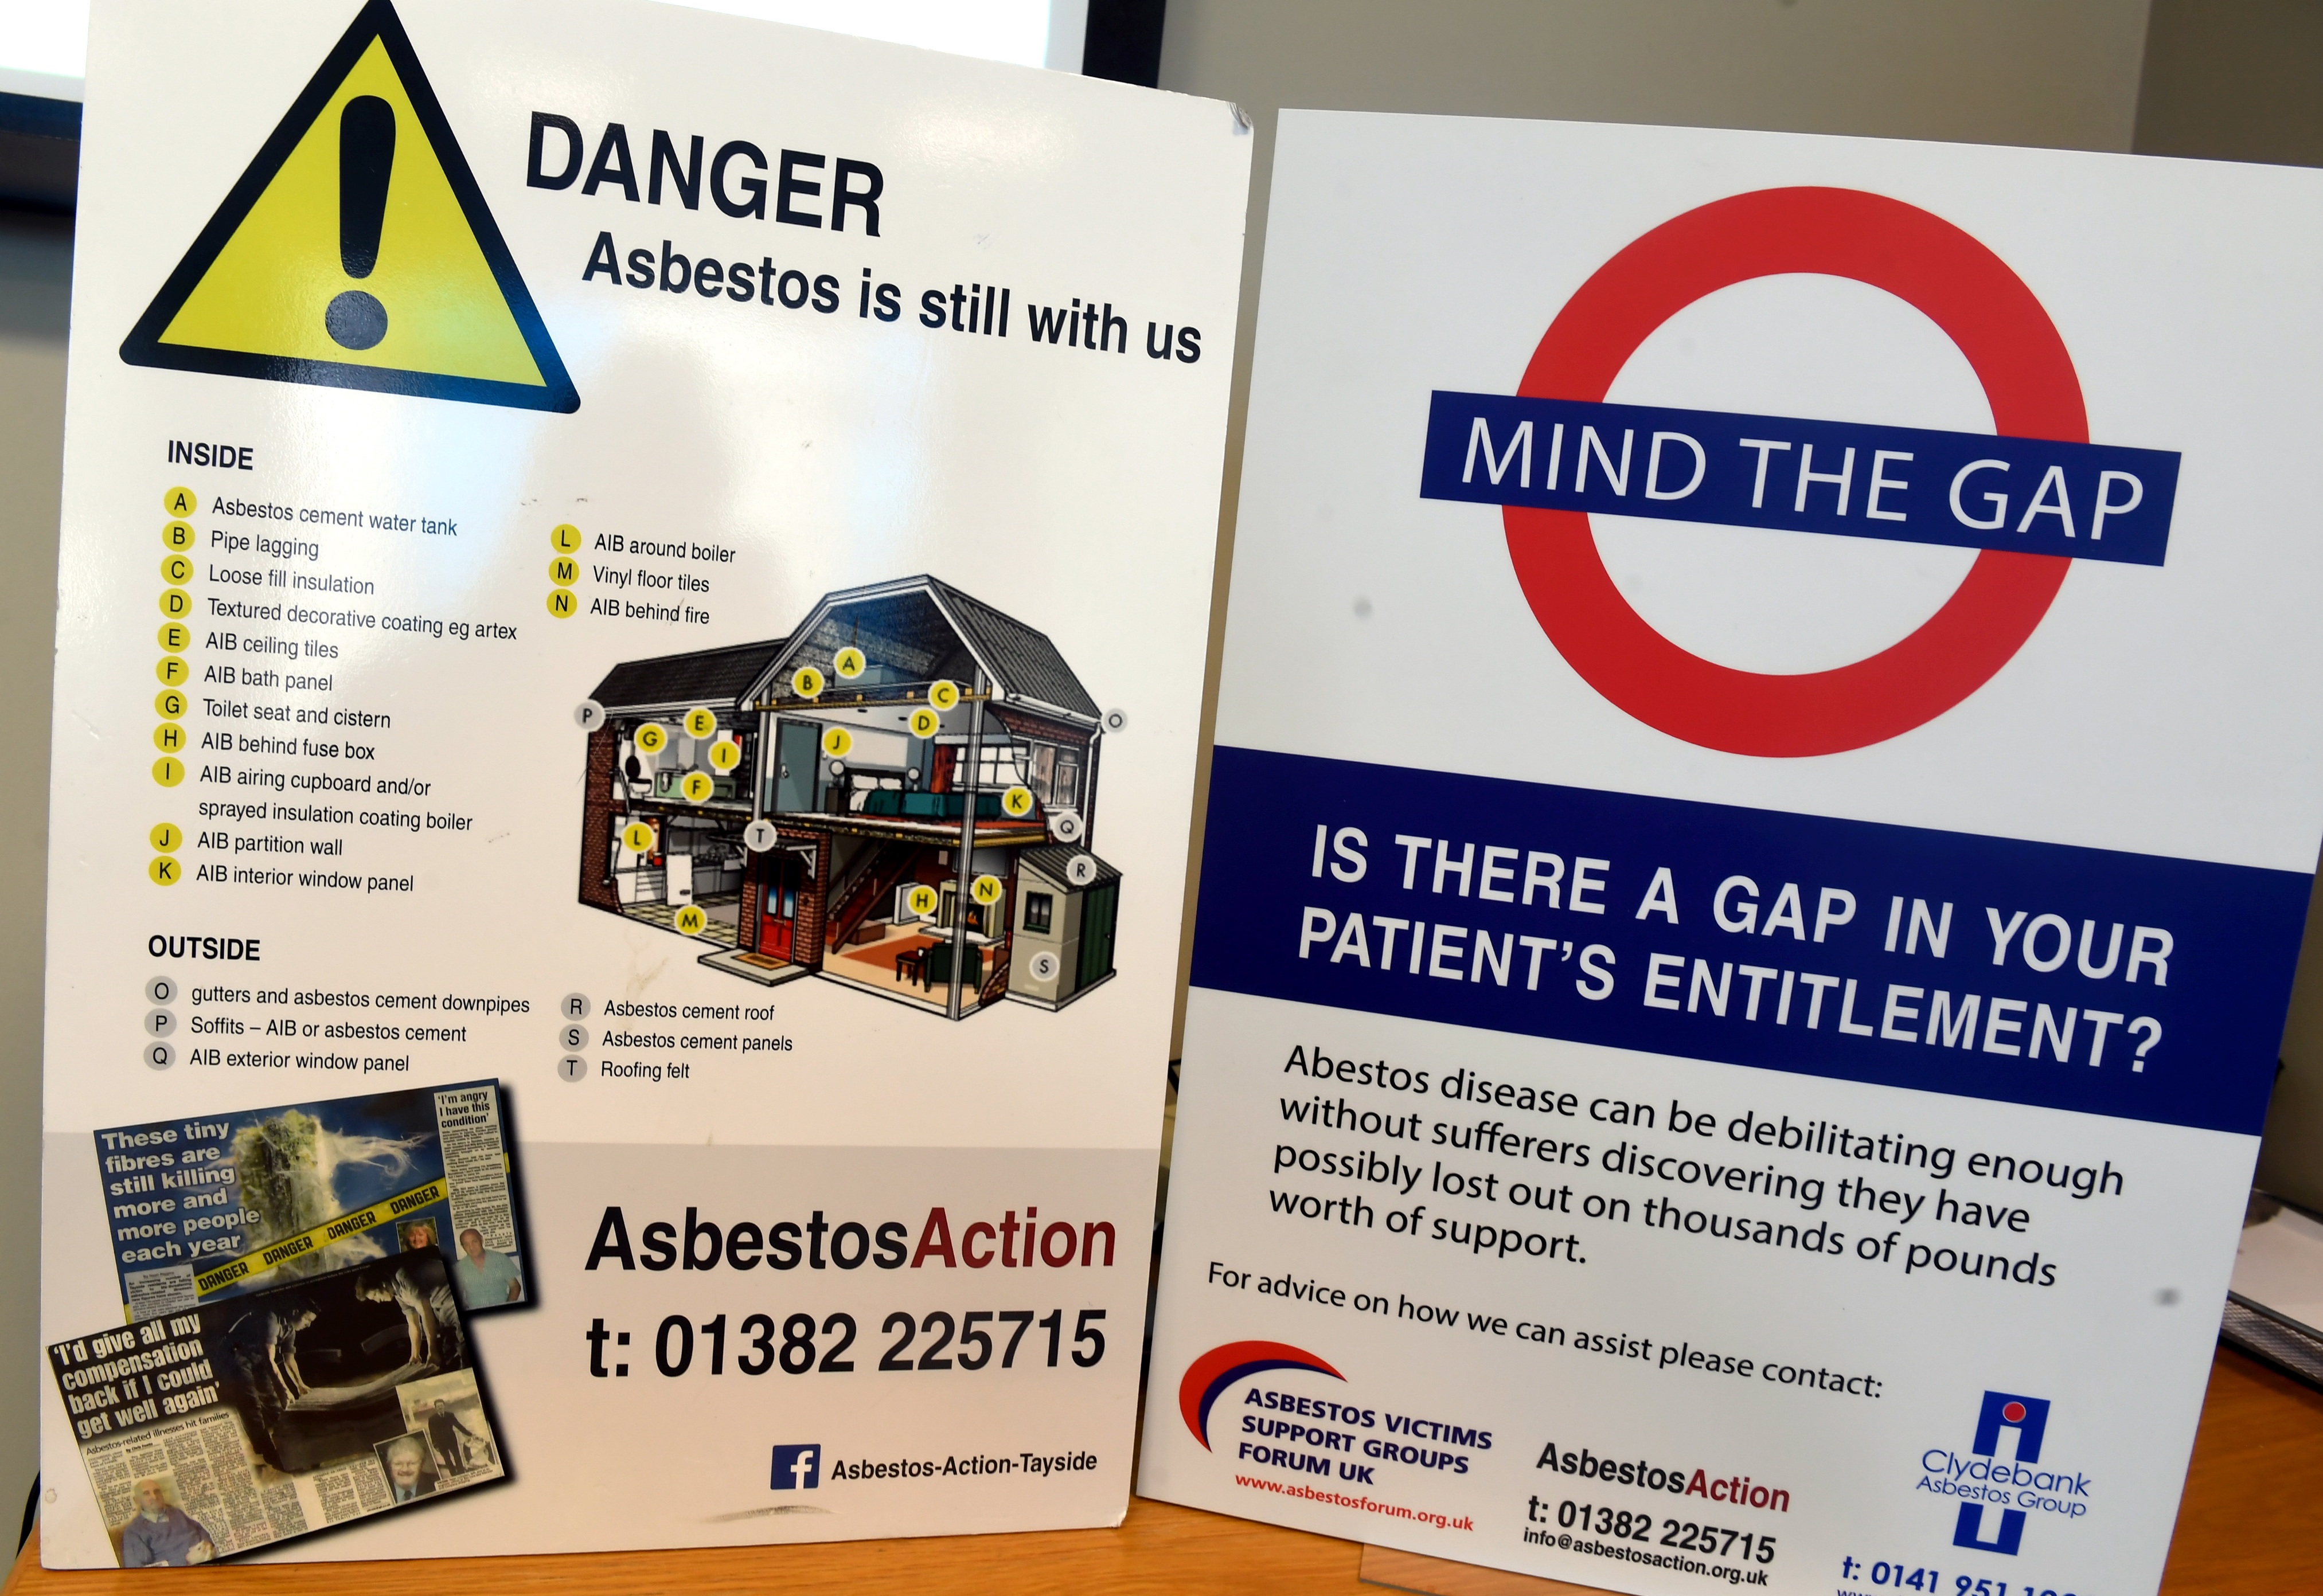 Asbestos Action was set-up to assist sufferers